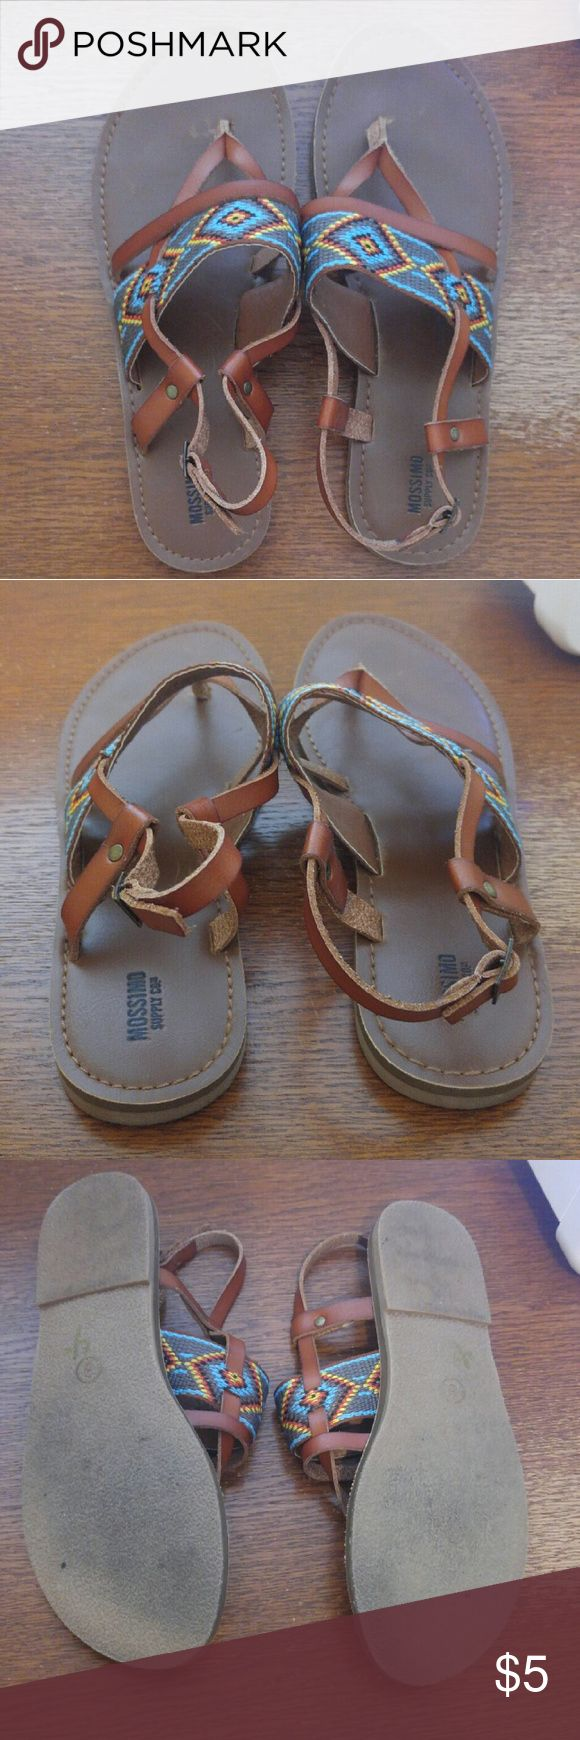 Mossimo Brown Leather Embroidered Tribal Sandals EEUC! Worn briefly twice. Size 8. Boho tribal embroidery and brown leather. Mossimo by Target. Mossimo Supply Co Shoes Sandals